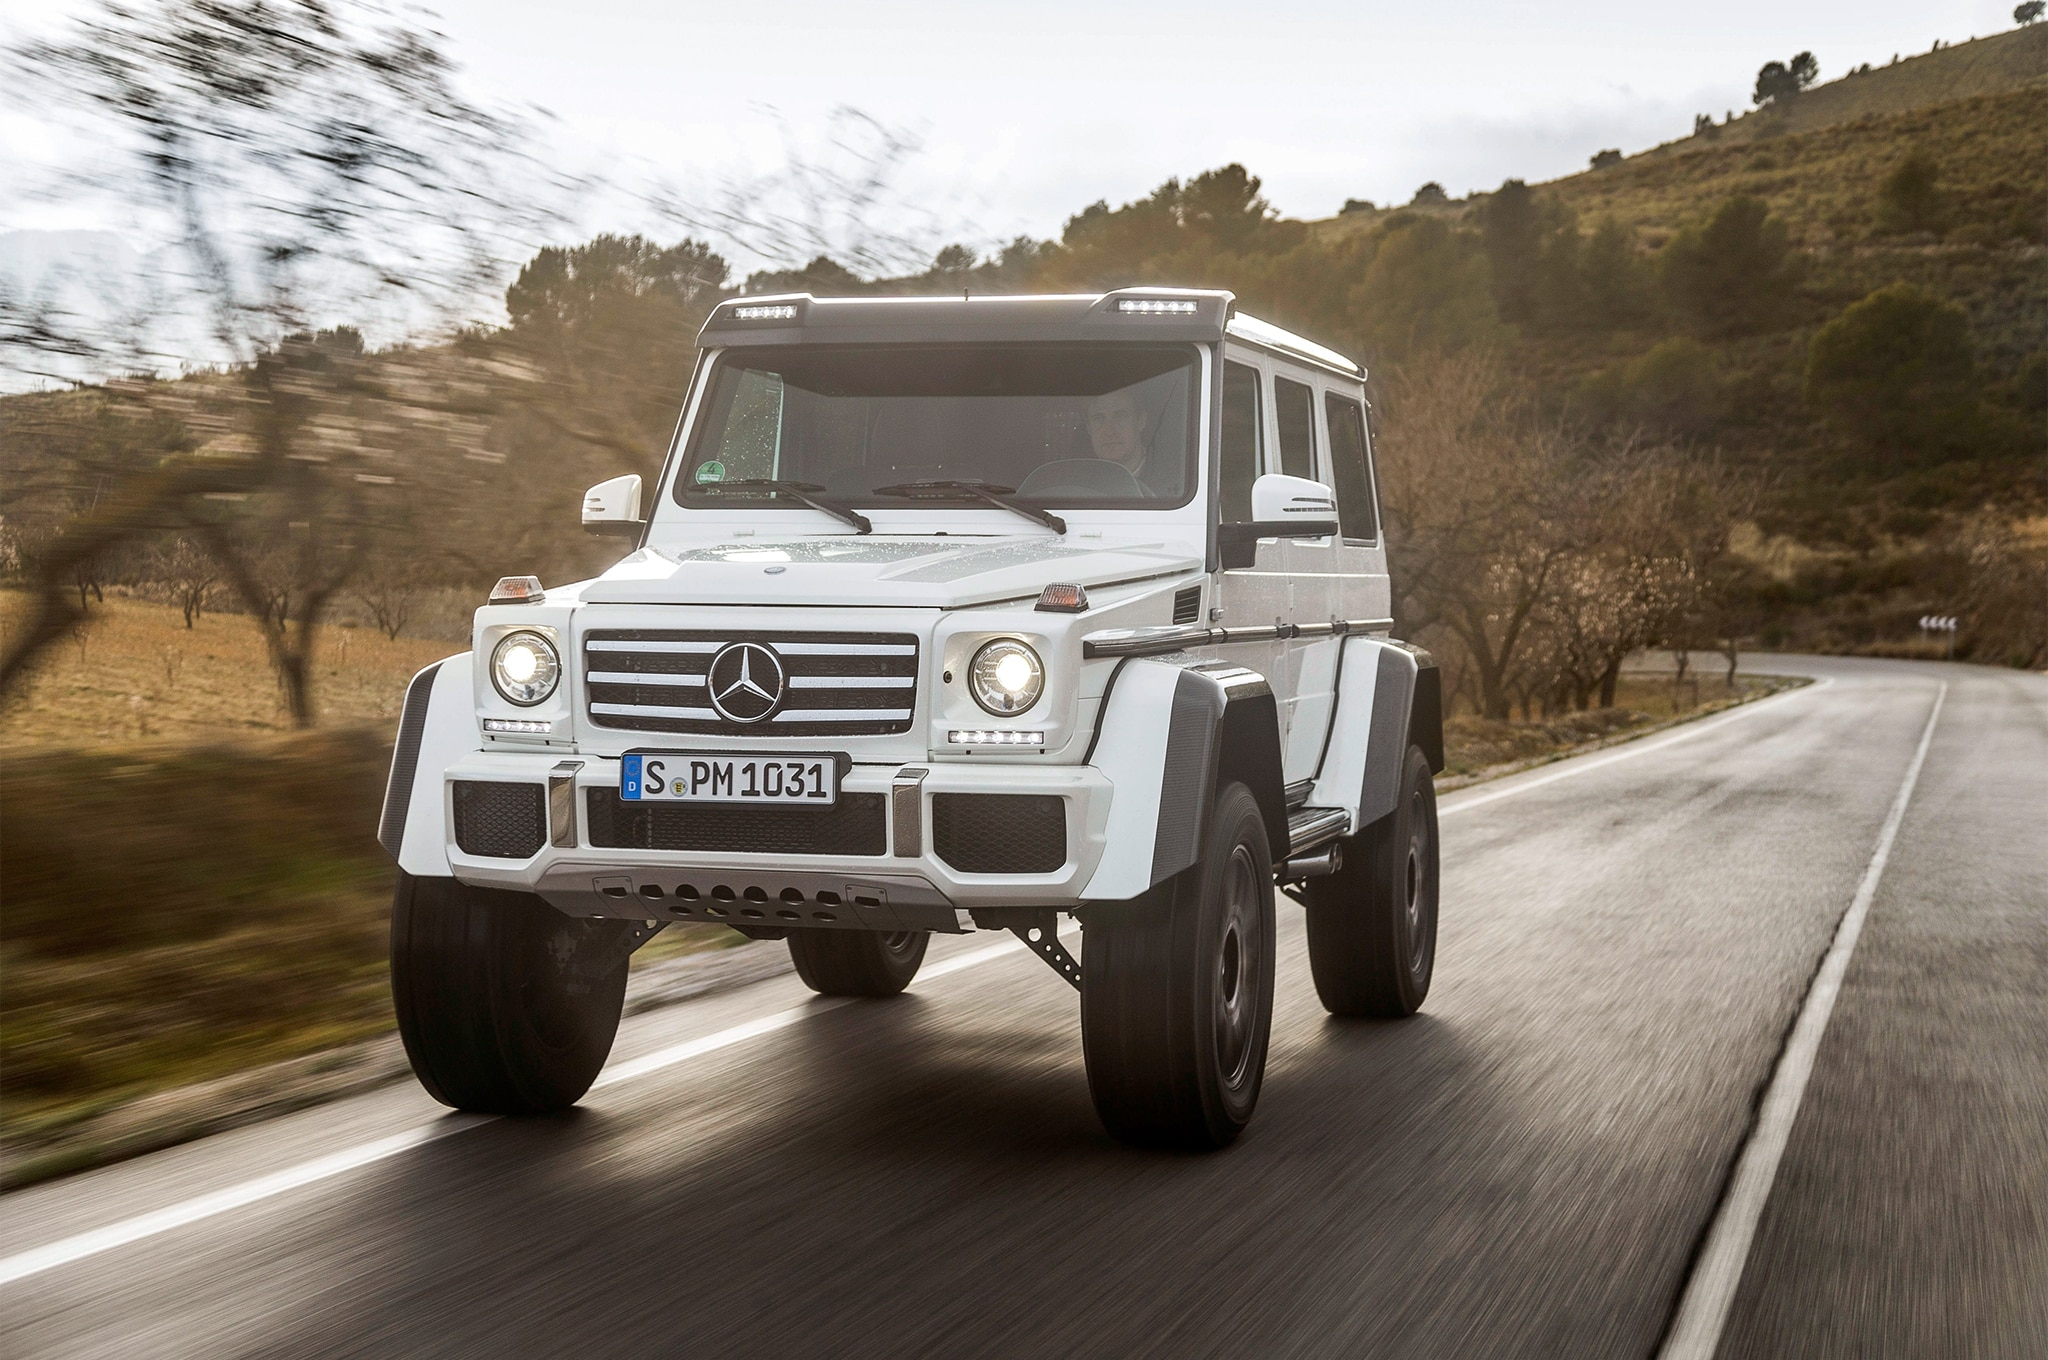 2017 Mercedes-Benz G 550 4x4^2 One Week Review | Automobile Magazine